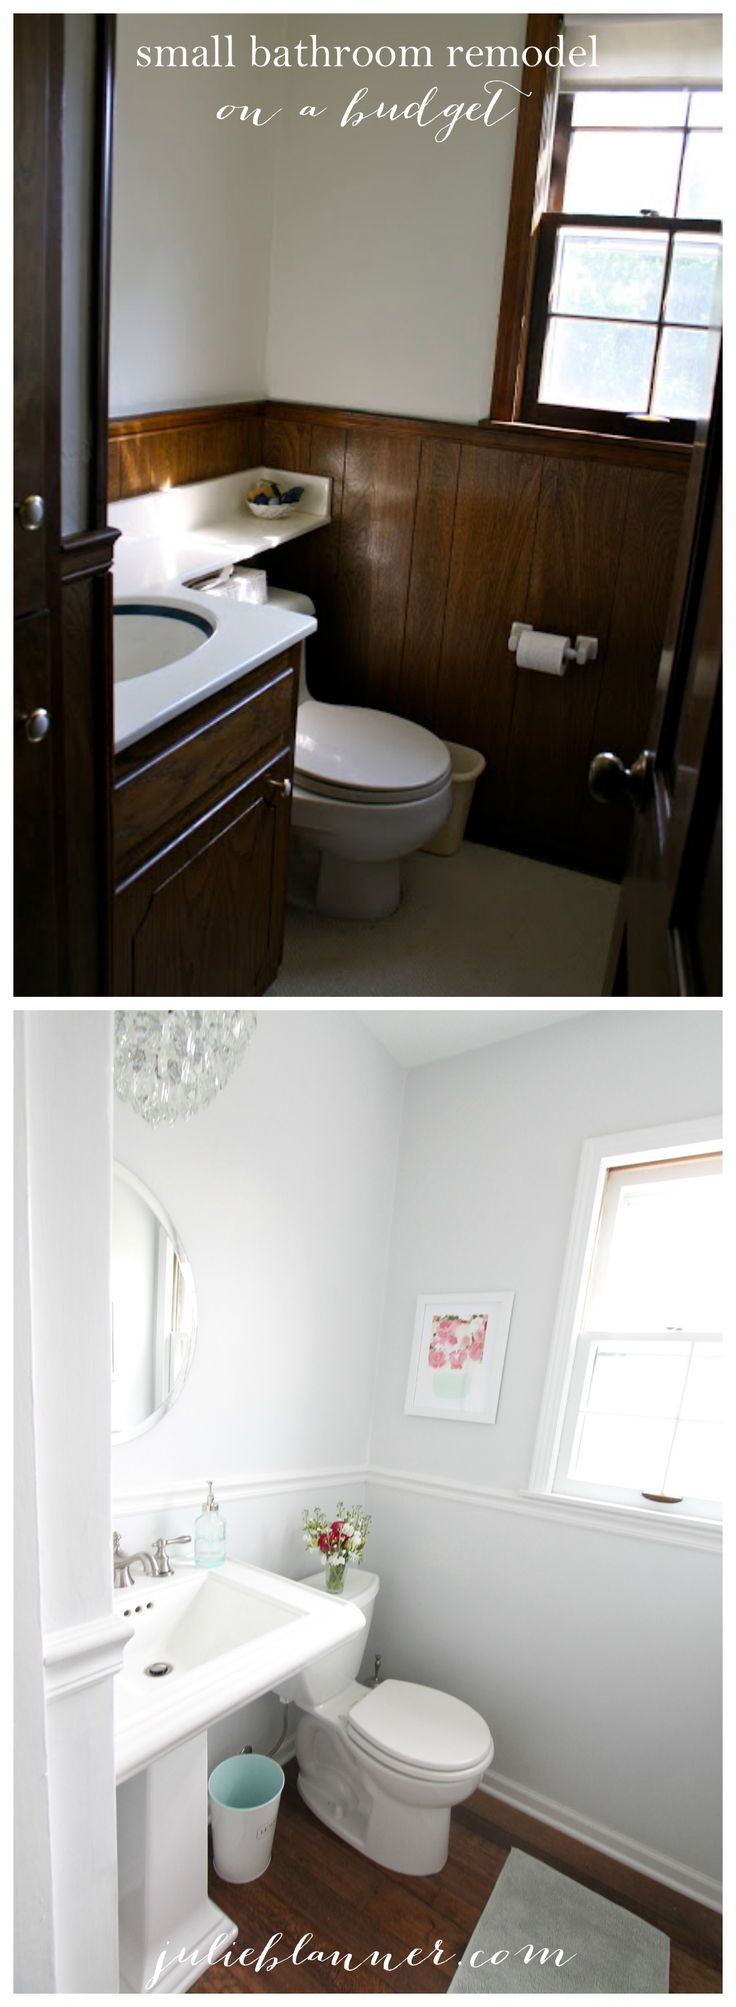 16 best images about Small bathroom update ideas on ...